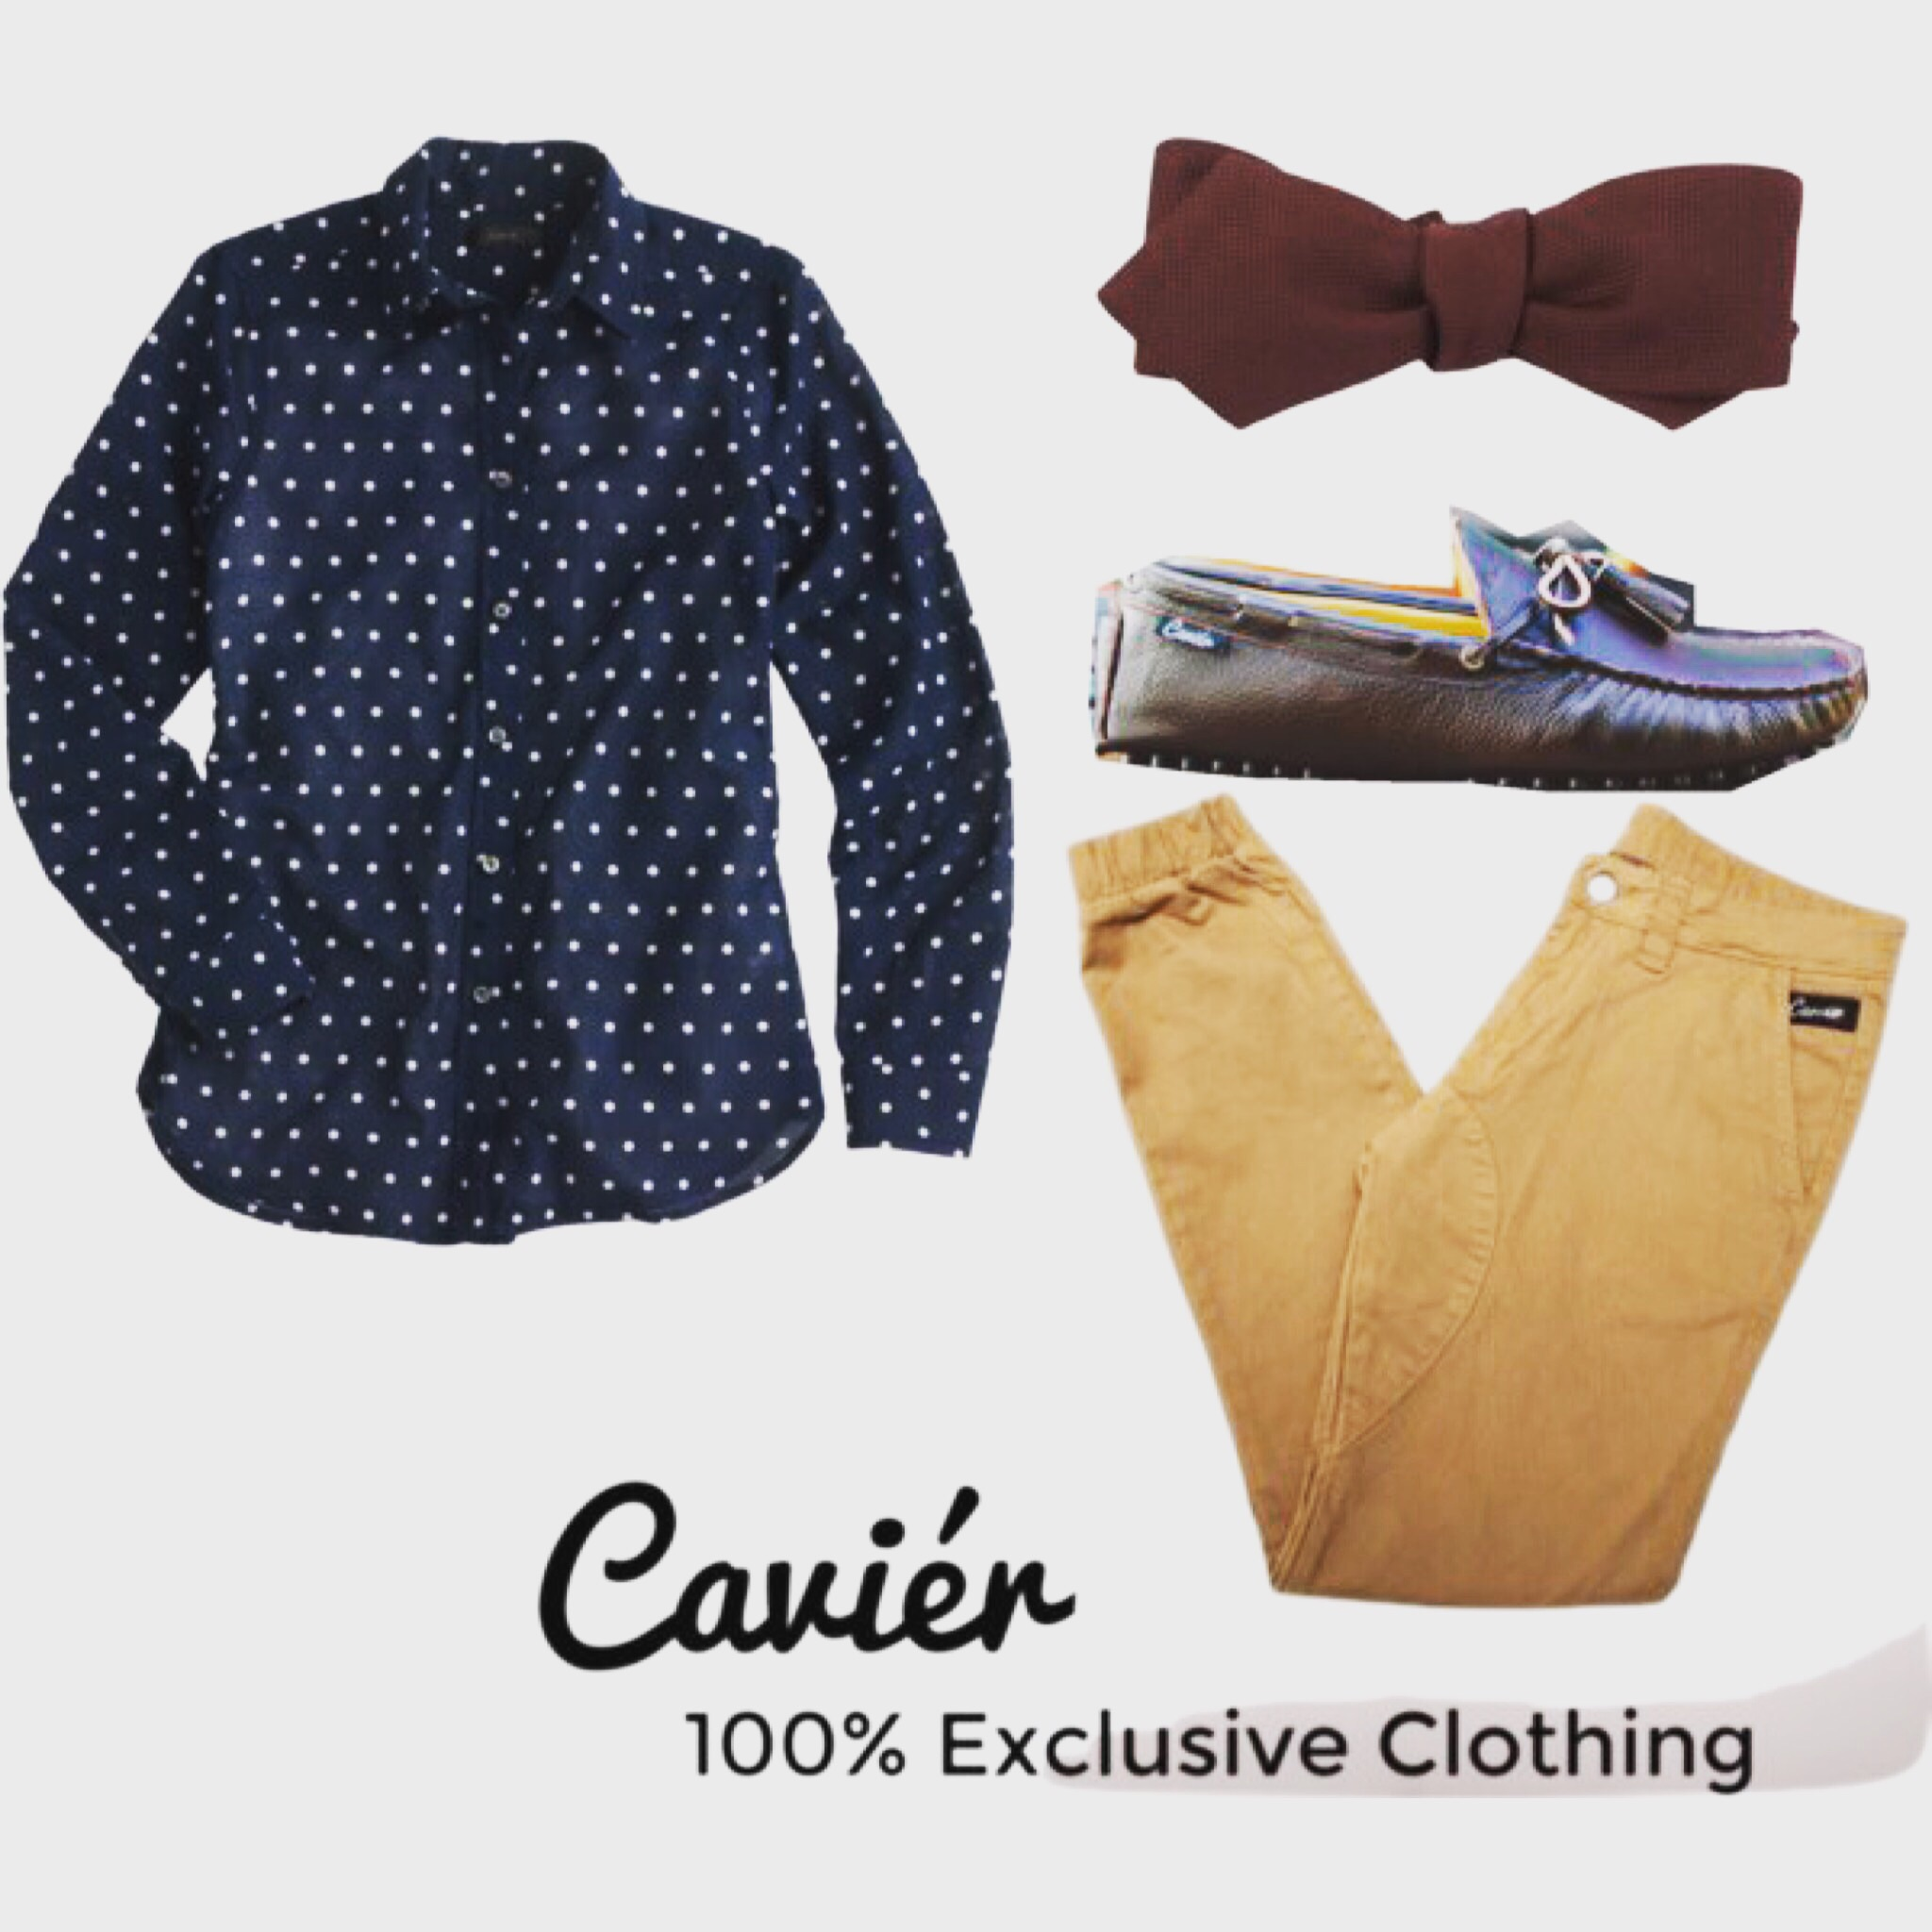 Shirt: JCREW.COM; $52  Joggers: CAVIERCLOTHING; $120  Loafers: CAVIERCLOTHING; $180  Bow tie: BARNYES.COM; $110